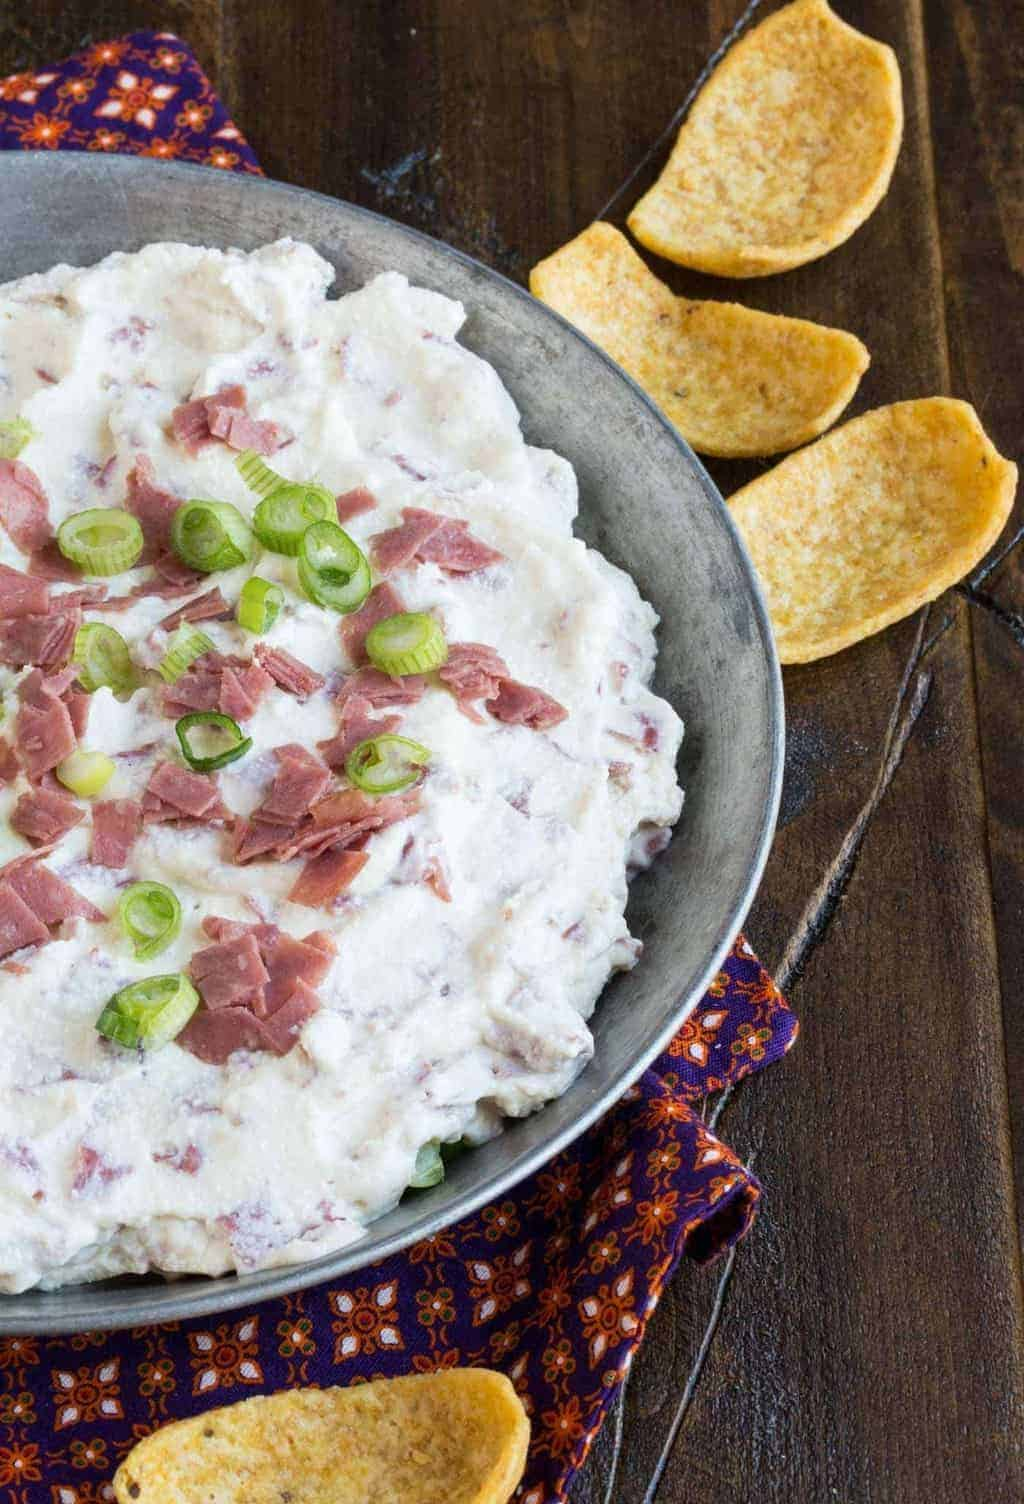 There is a reason this Chipped Beef Dip recipe has been around for years. Classic appetizer recipes never go out of style!